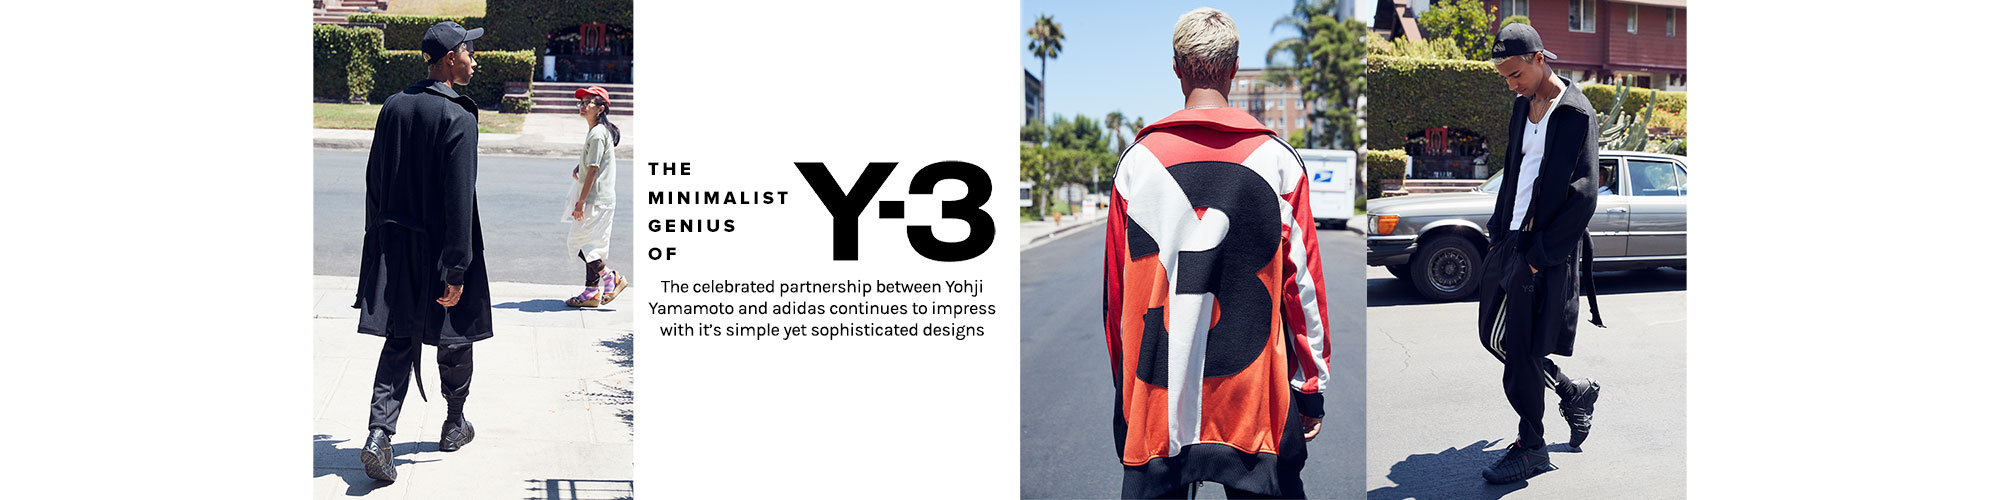 The Minimalist Genius of Y-3. The celebrated partnership between Yohji Yamamoto and adidas continues to impress with it\u2019s simple yet sophisticated designs. Shohp Y-3